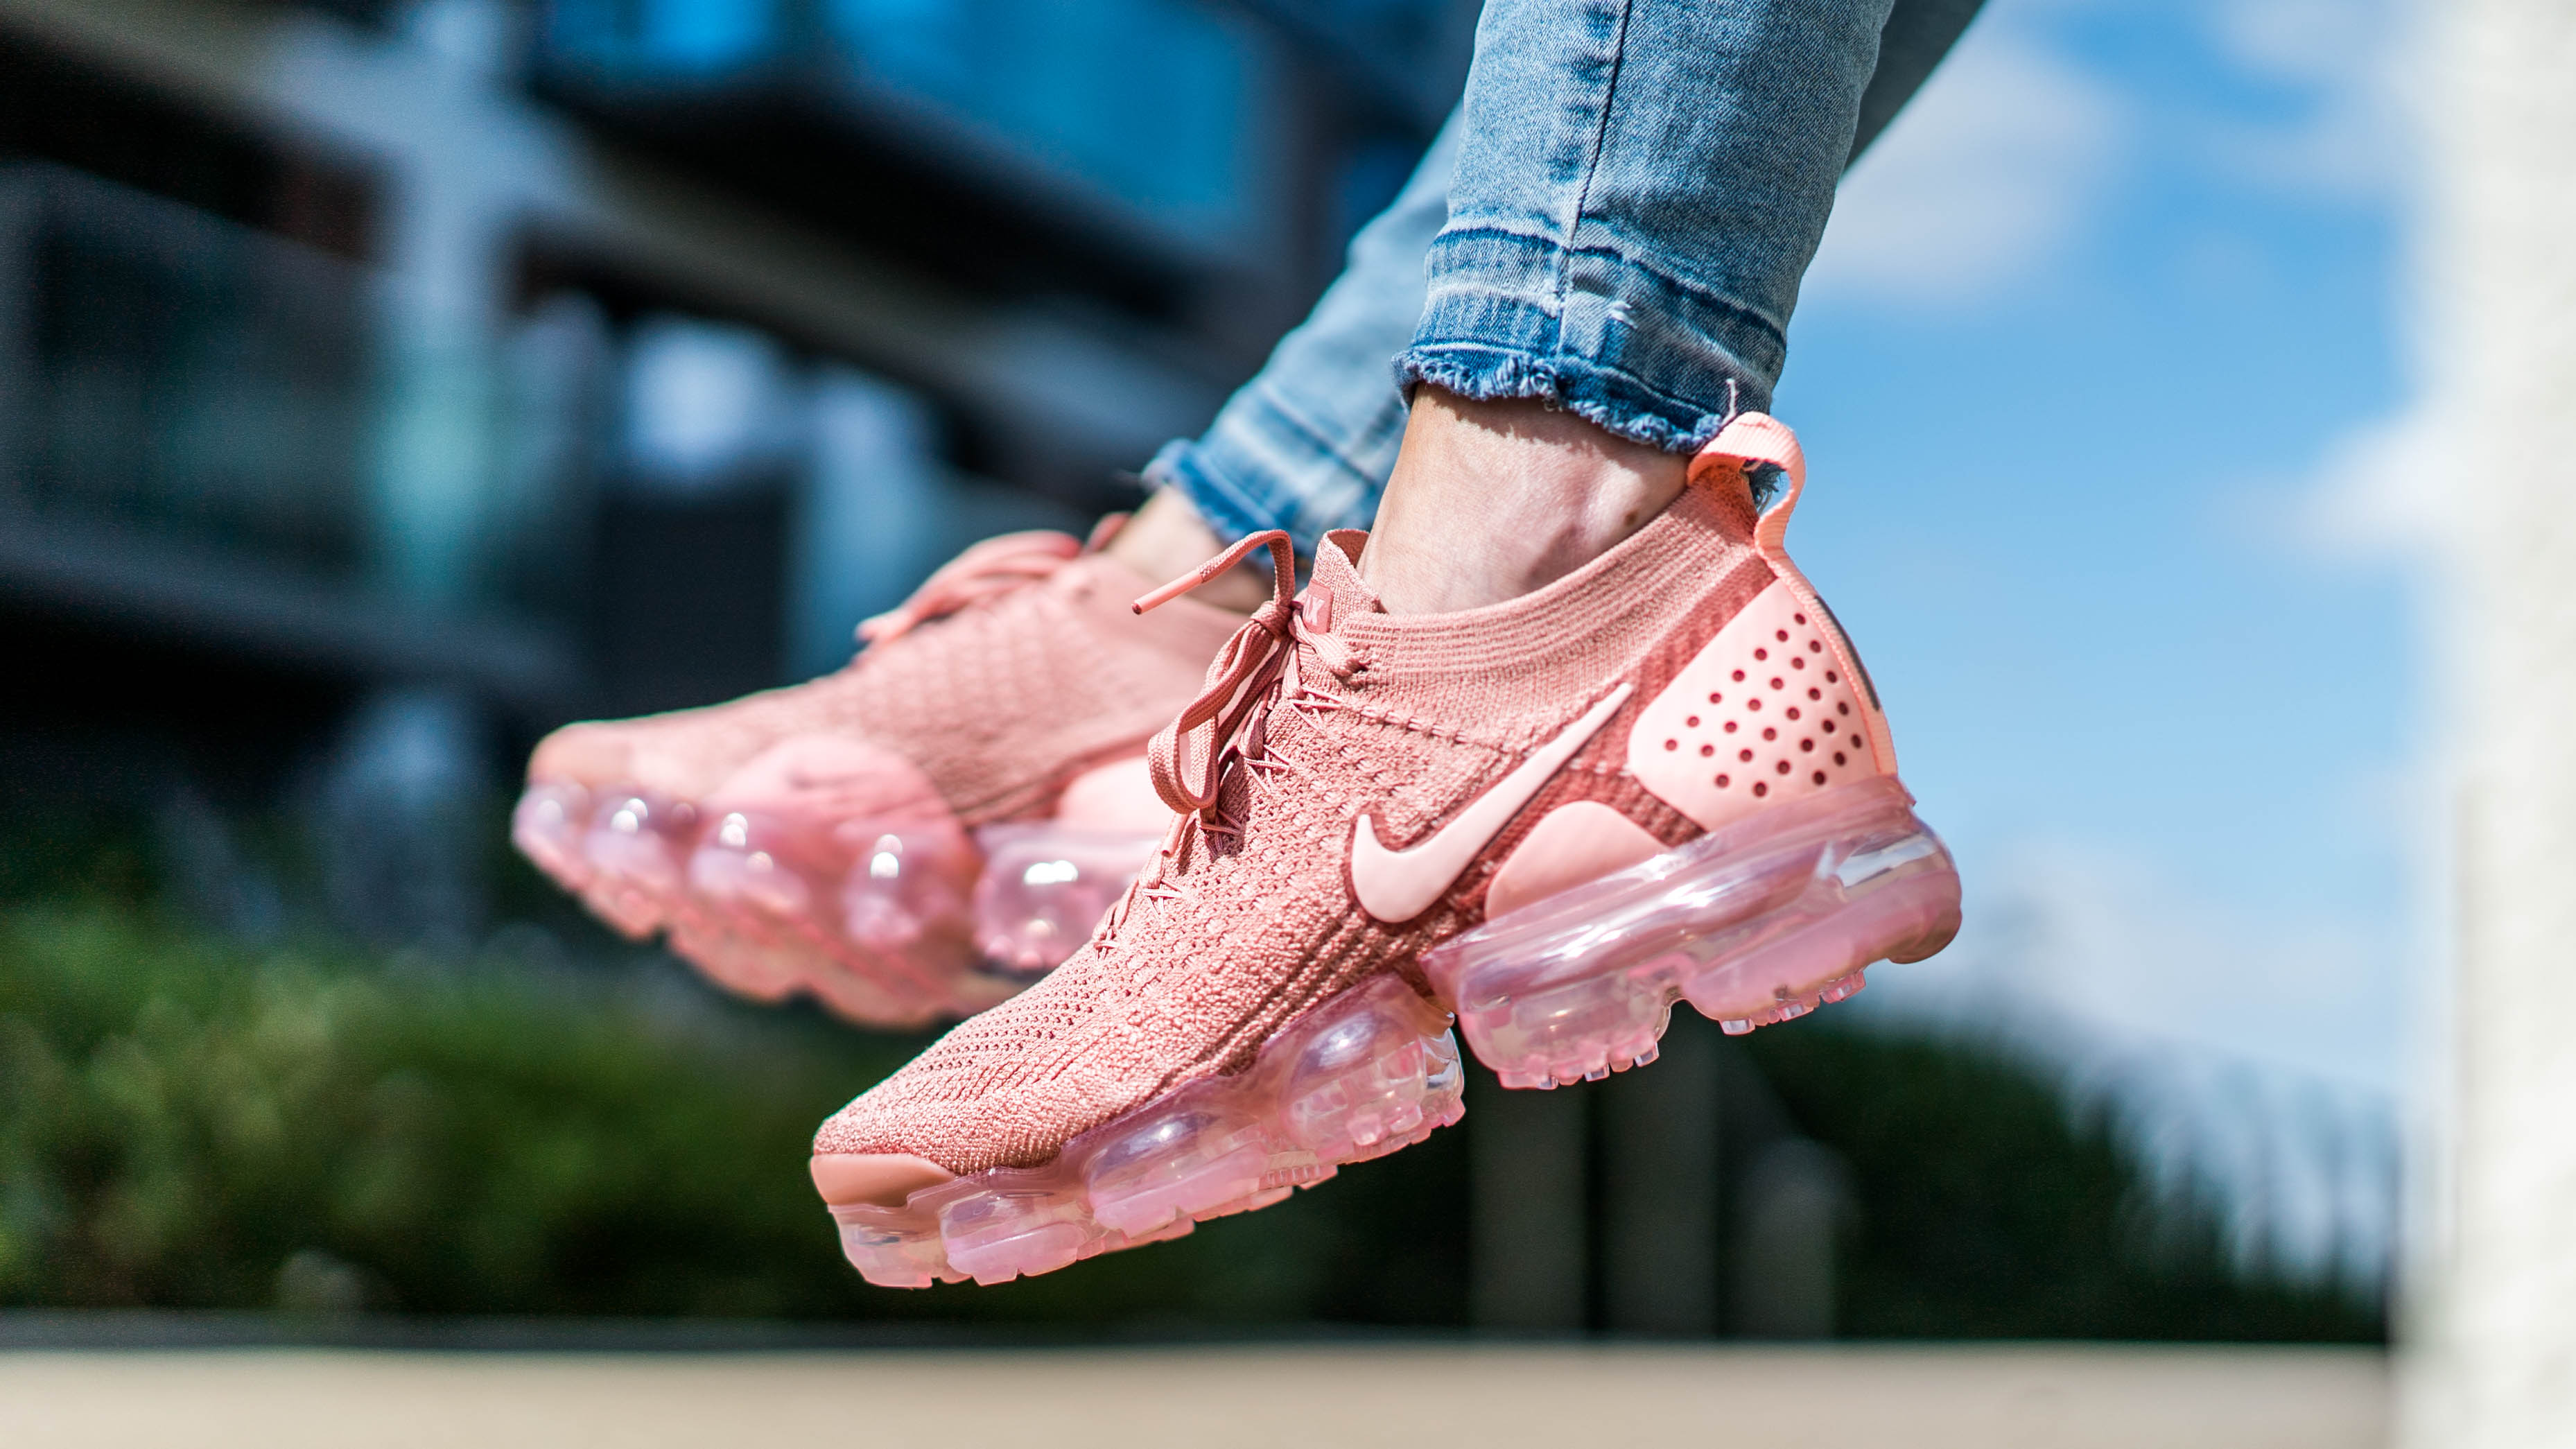 bfdc483c355 An Exclusive On Foot Look At The Nike Air VaporMax Flyknit 2 In Rust ...